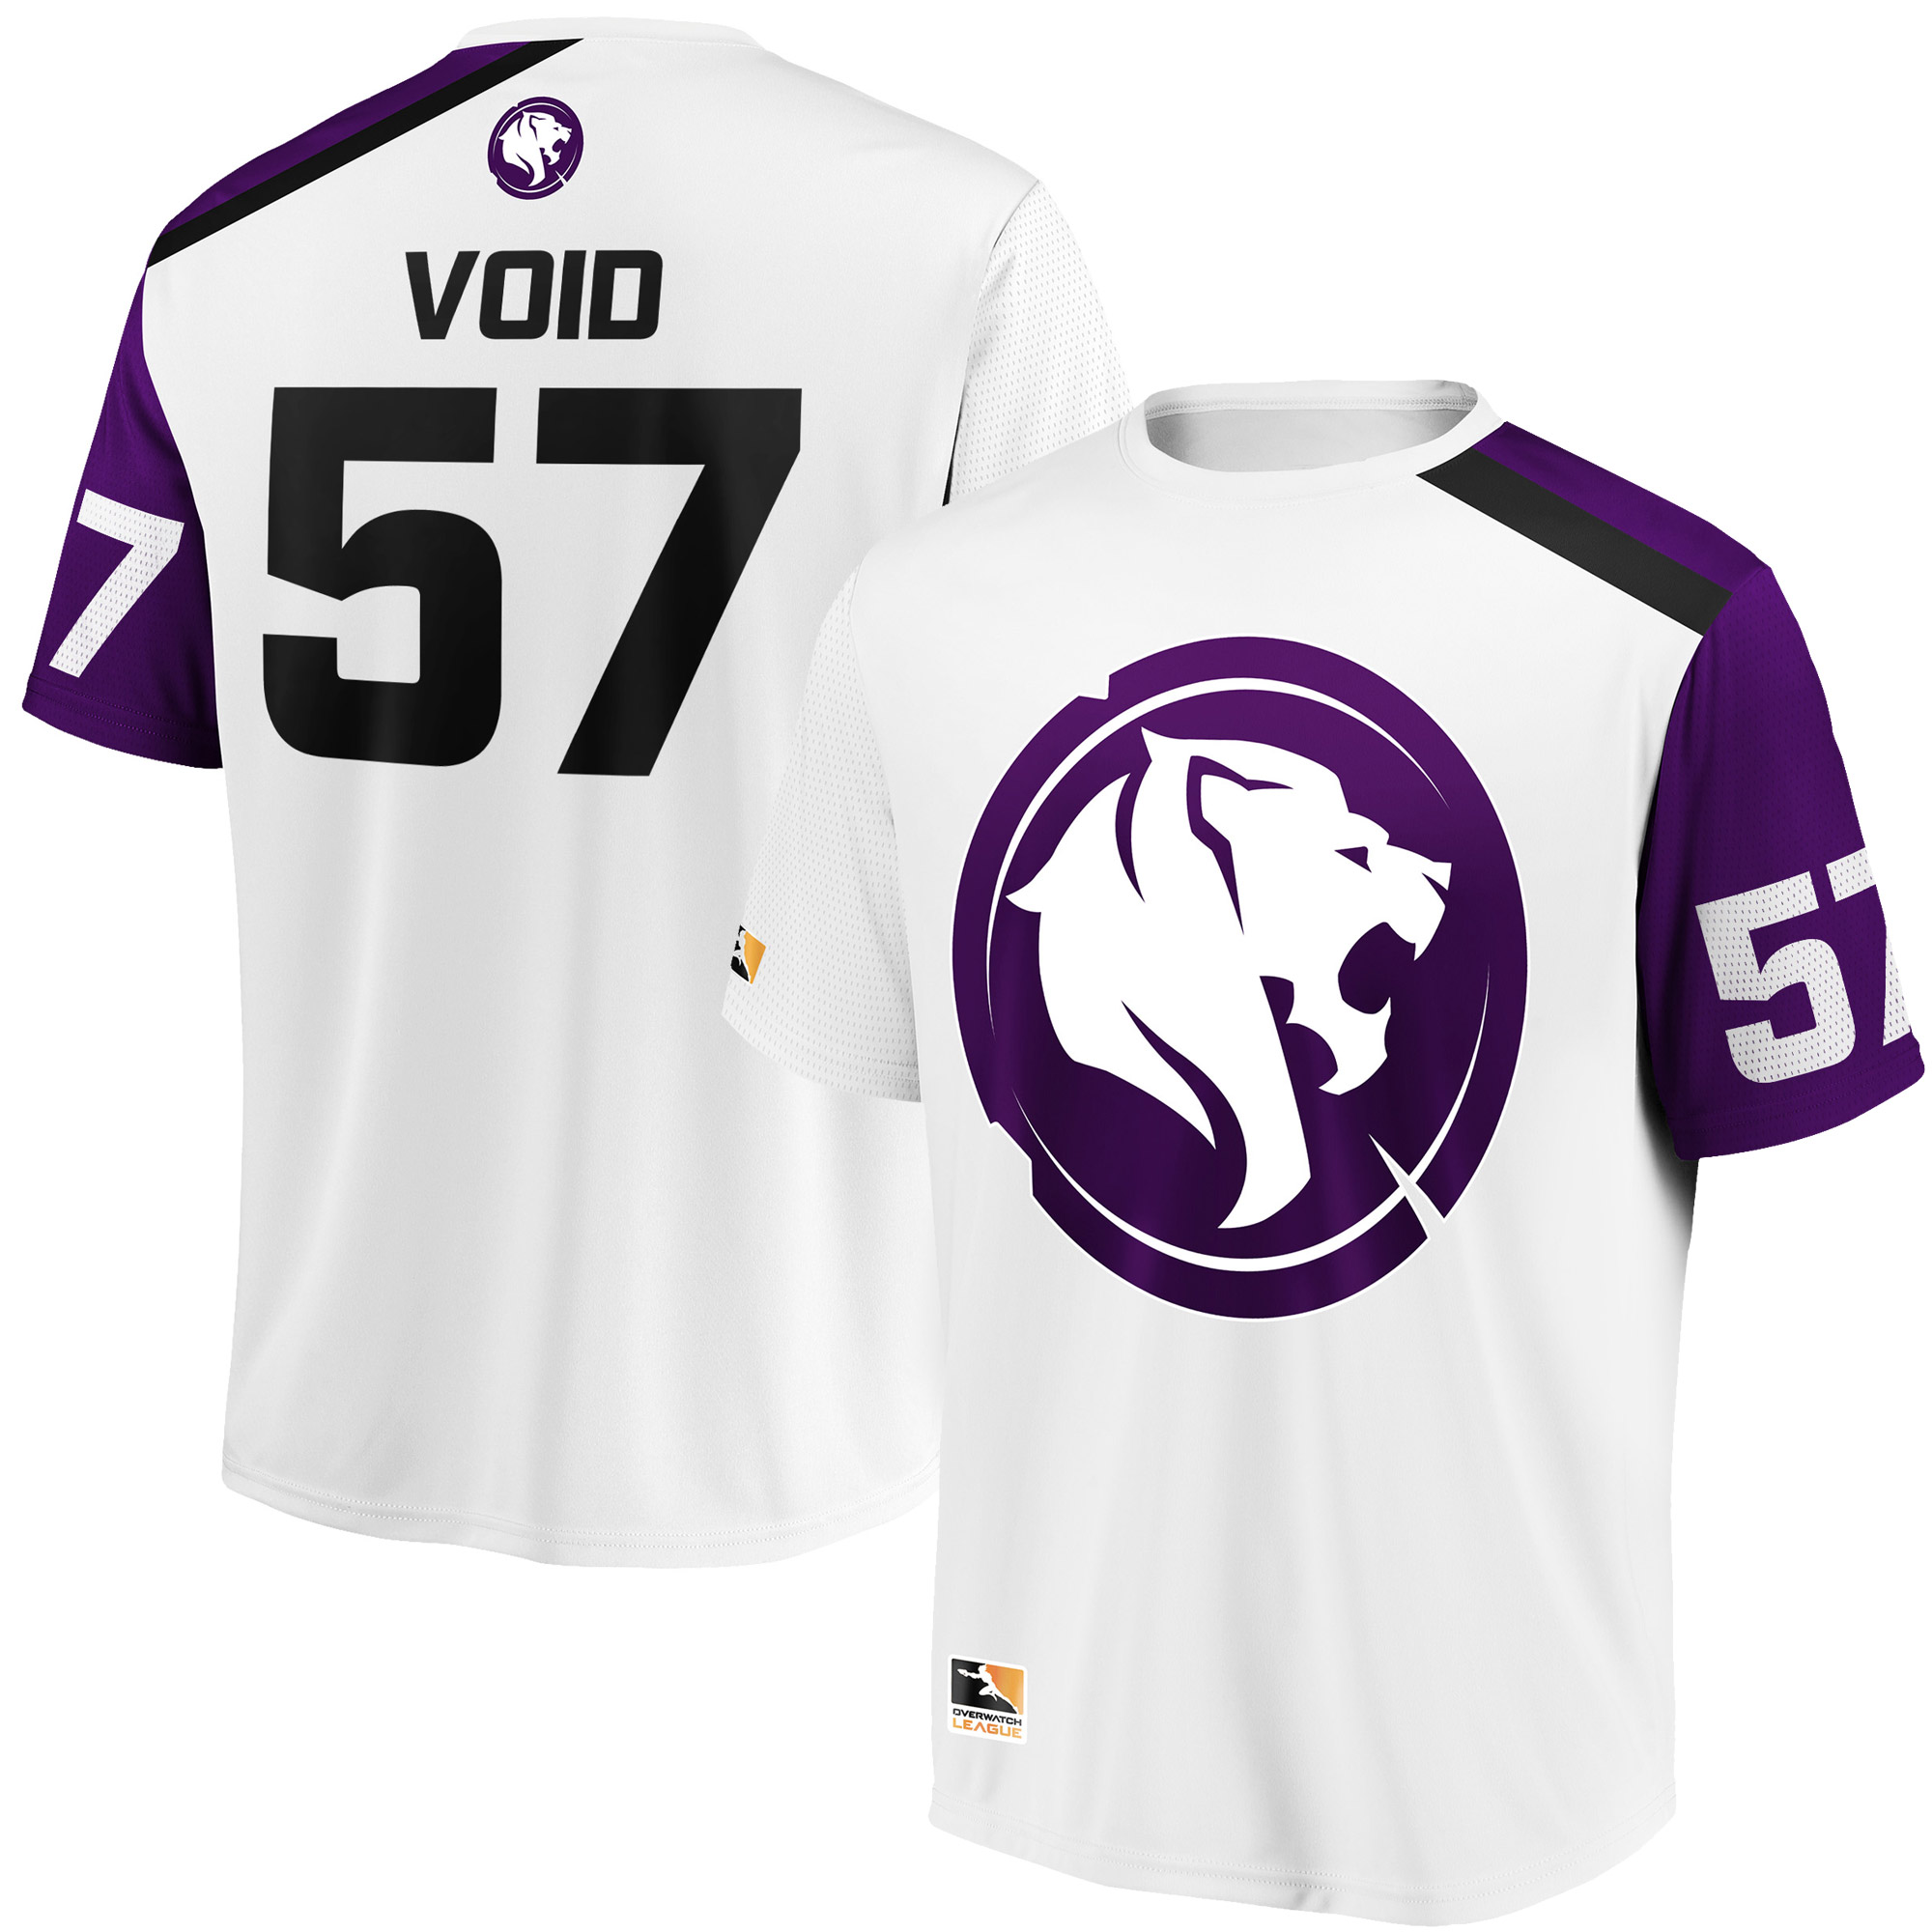 Void Los Angeles Gladiators Overwatch League Replica Away Jersey - White